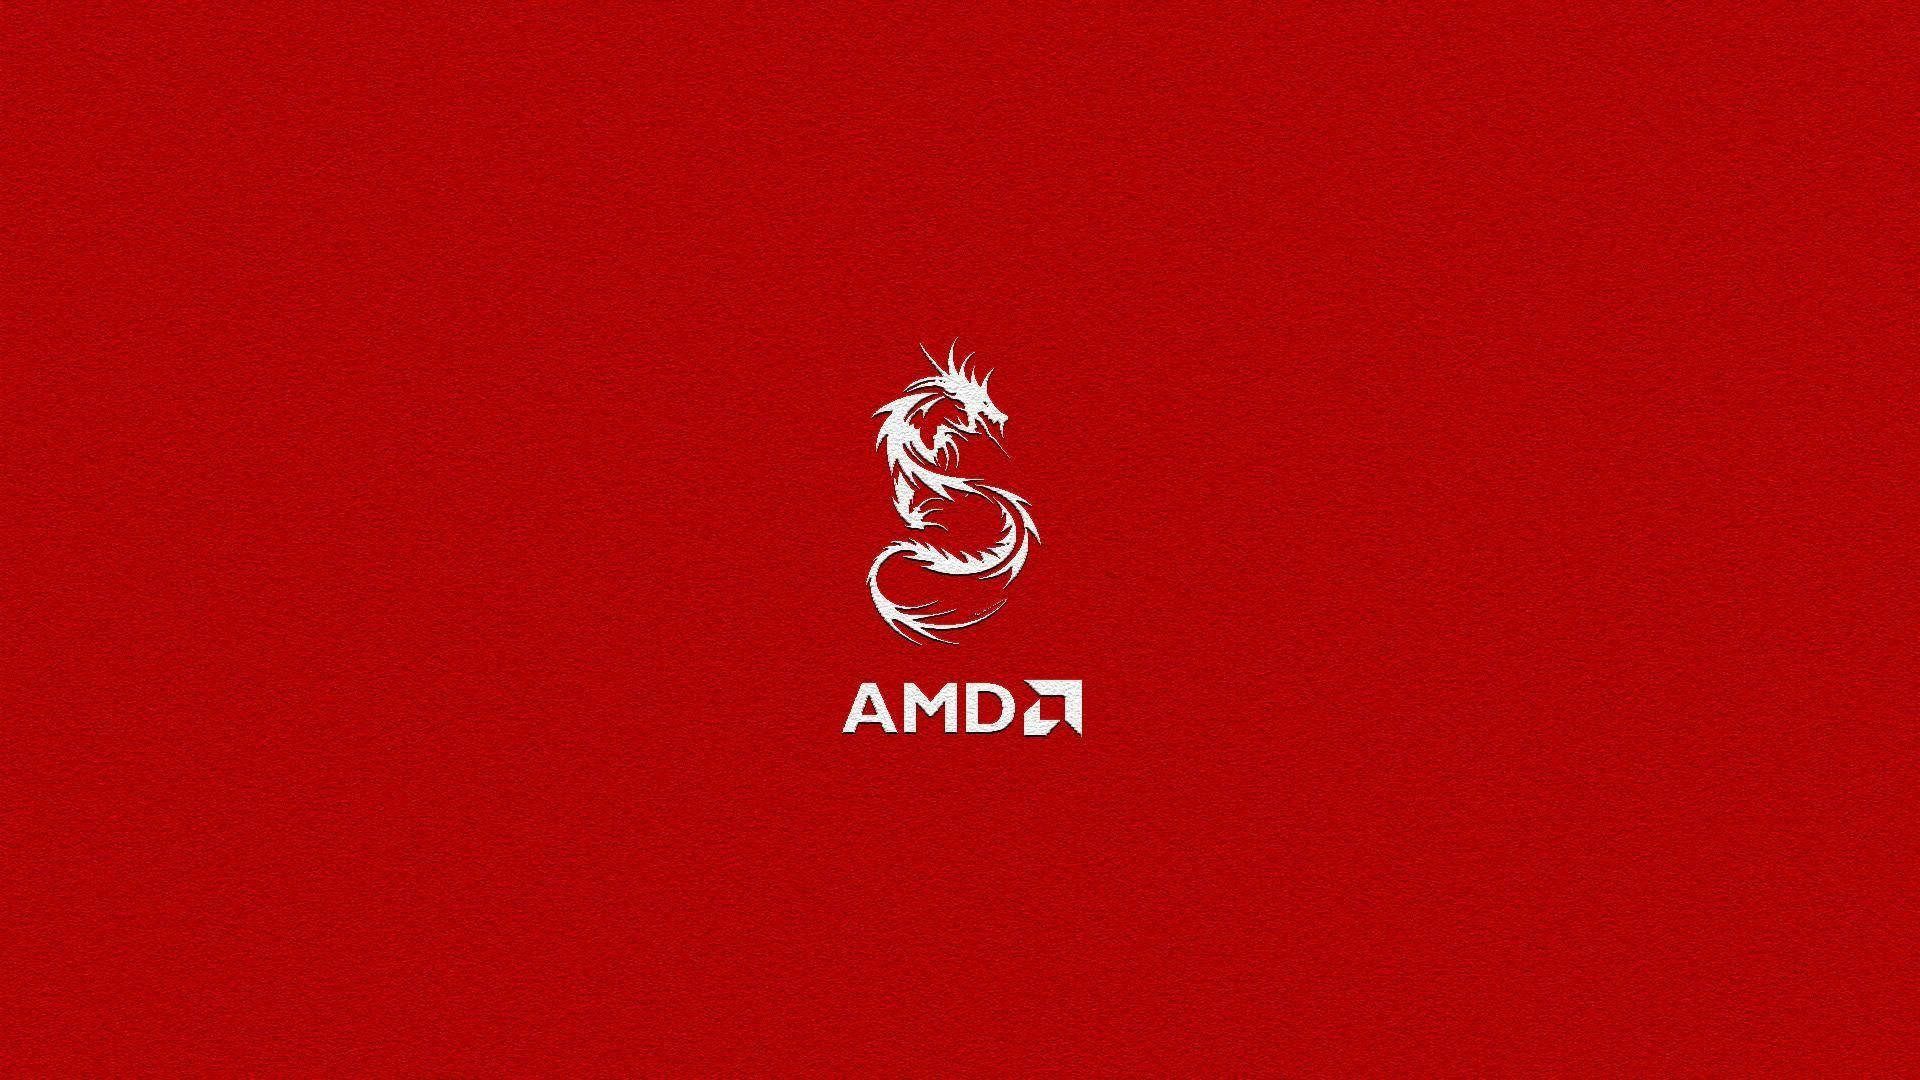 AMD Wallpaper (74+ pictures)